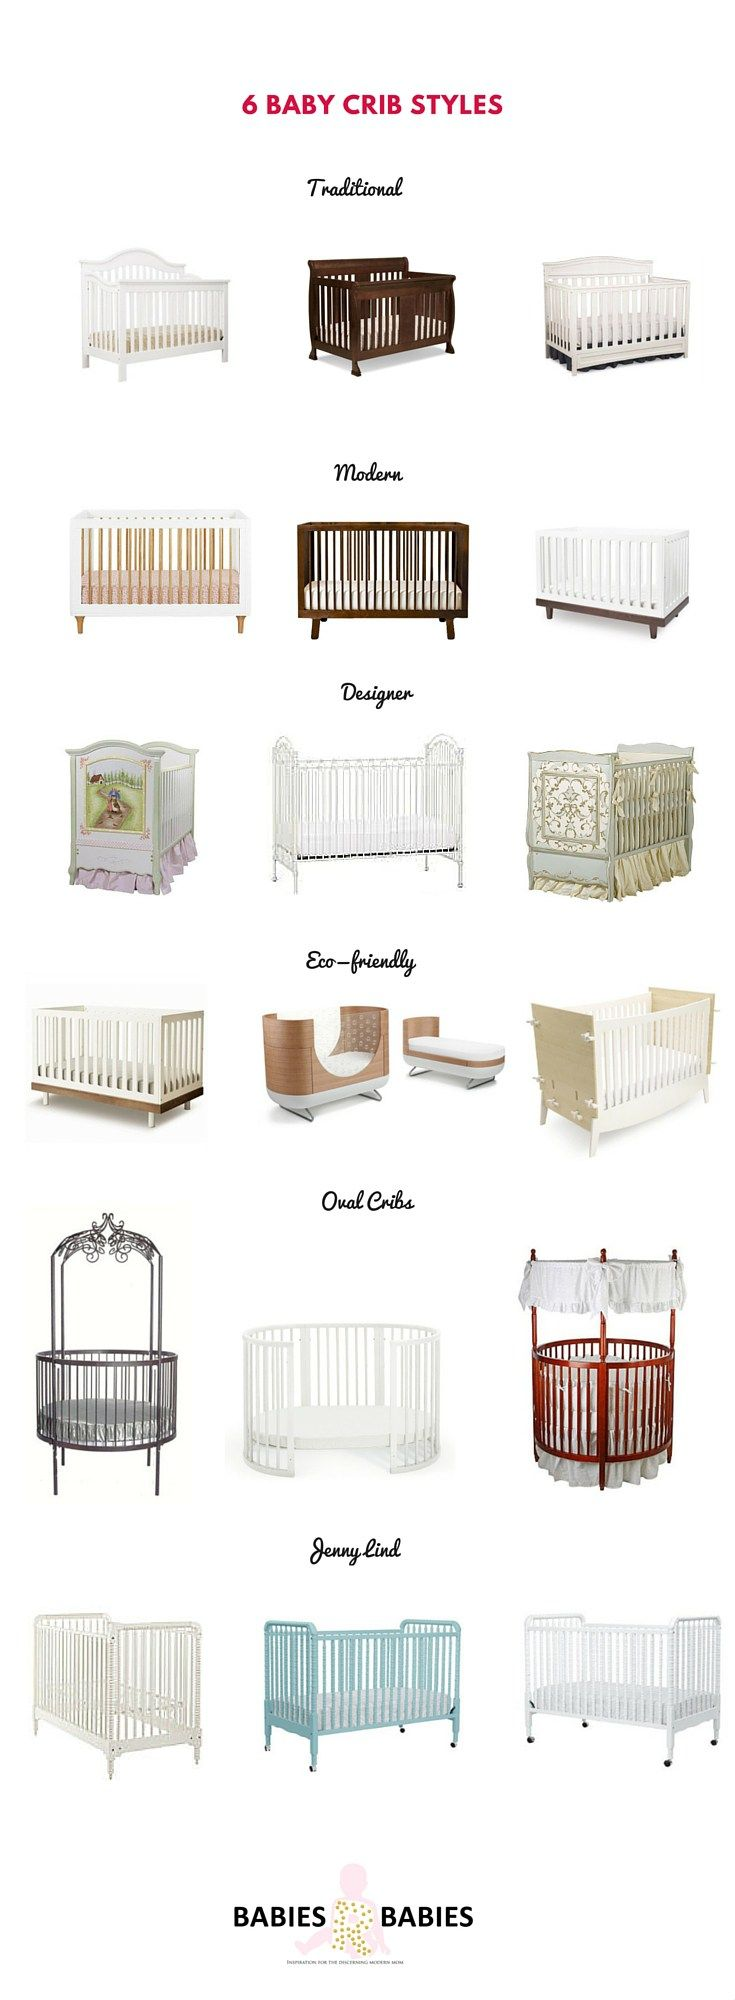 Most recommended crib for babies - How To Choose The Best Baby Crib Buyers Guide